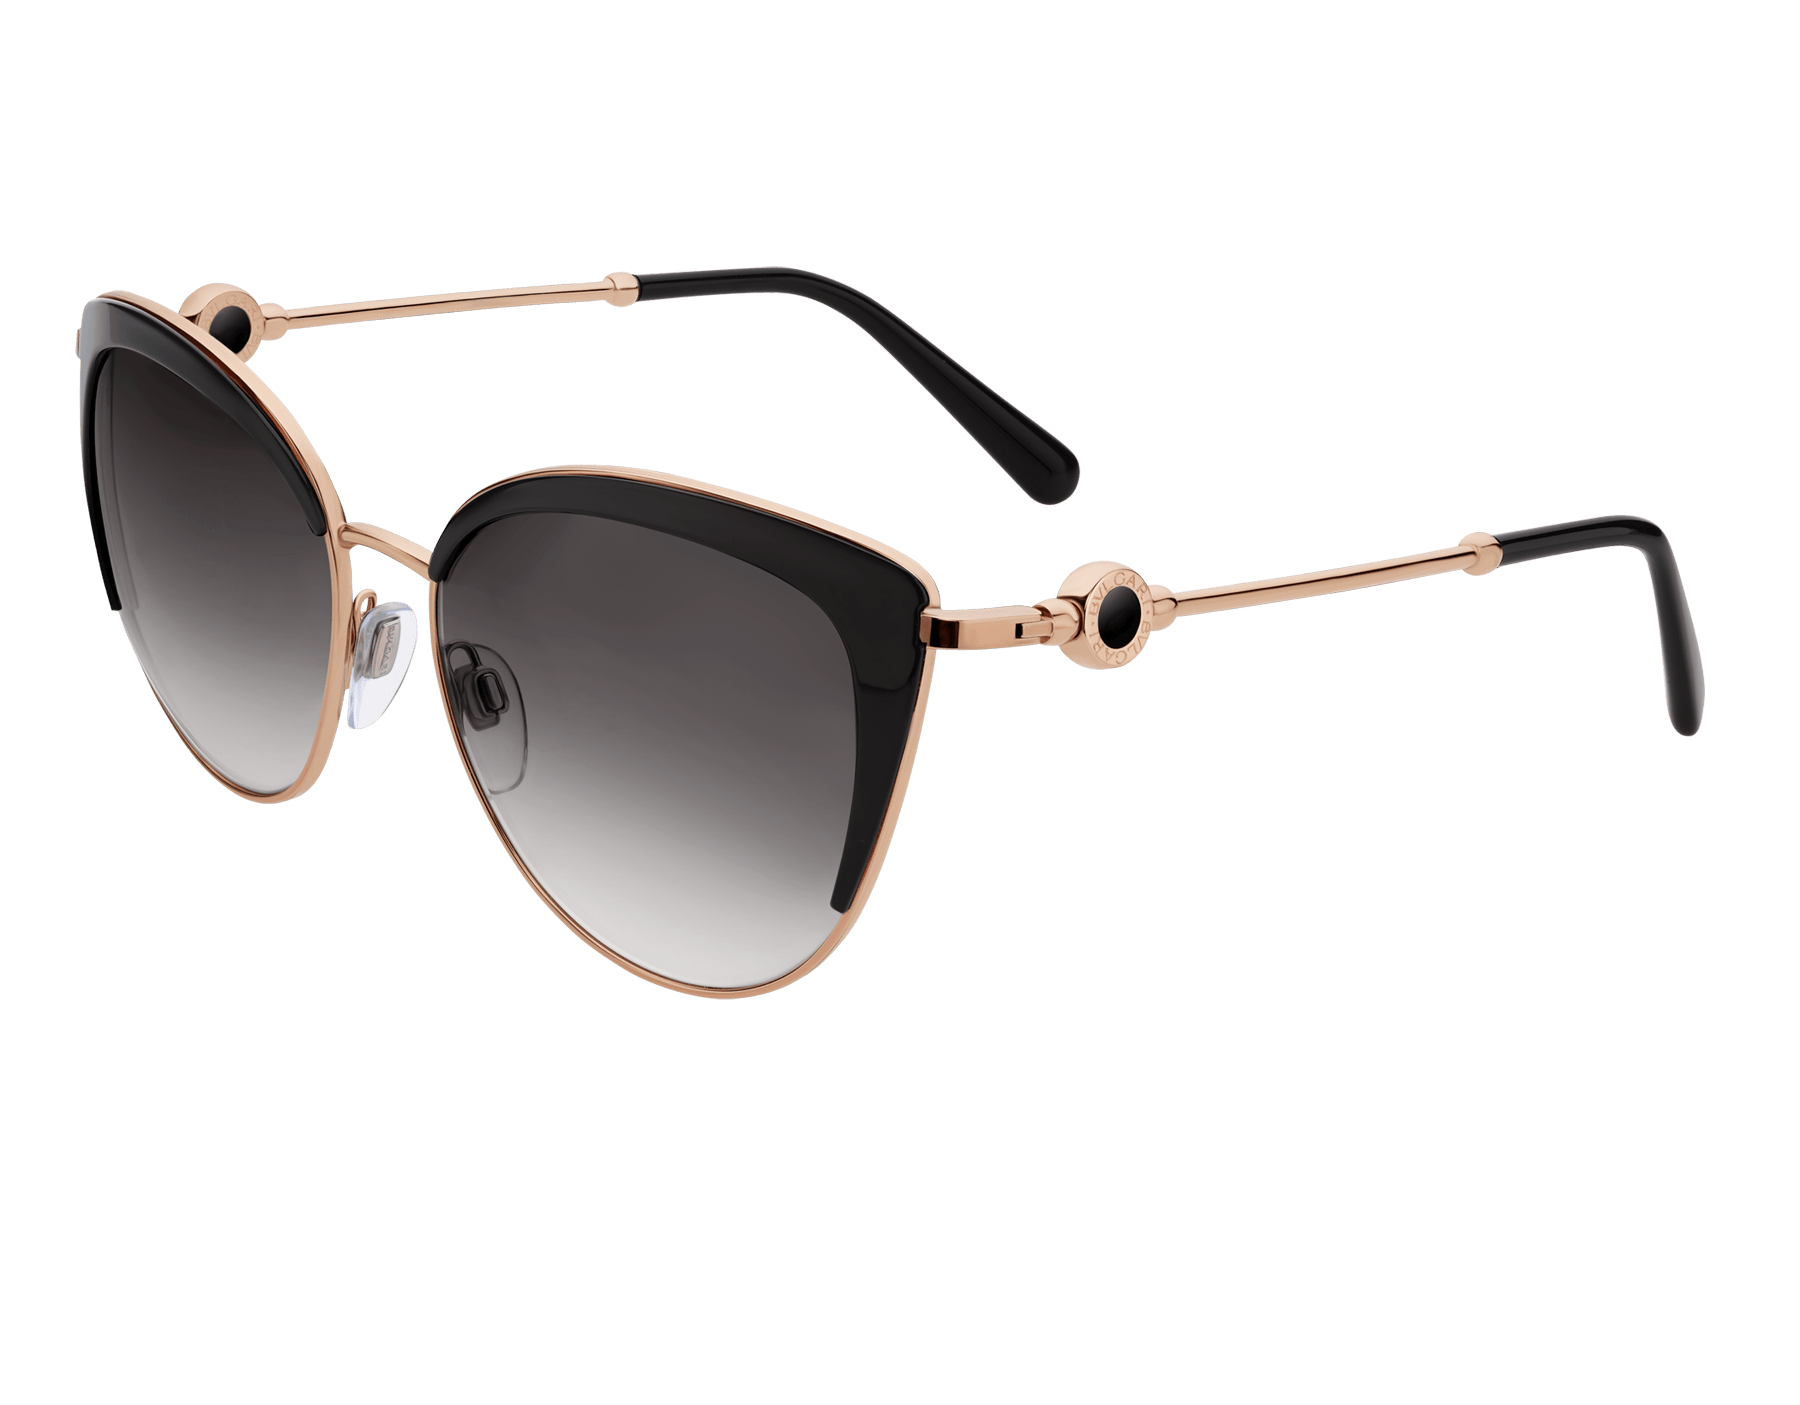 BVLGARI BVLGARI soft cat-eye metal sunglasses featuring a round décor with double logo. 903913 image 1